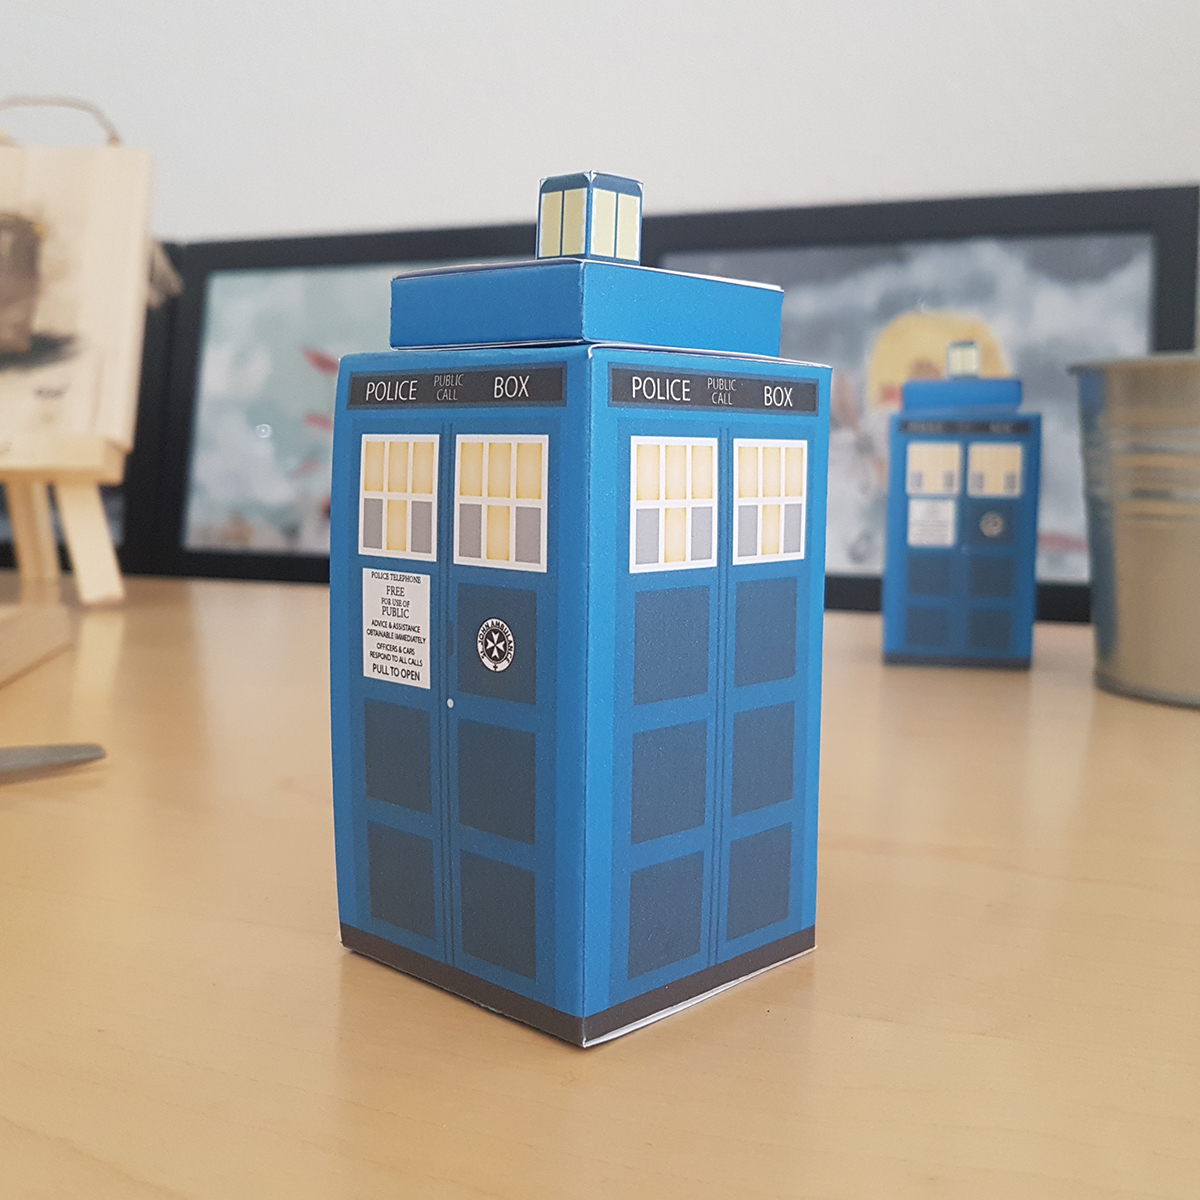 dr who box